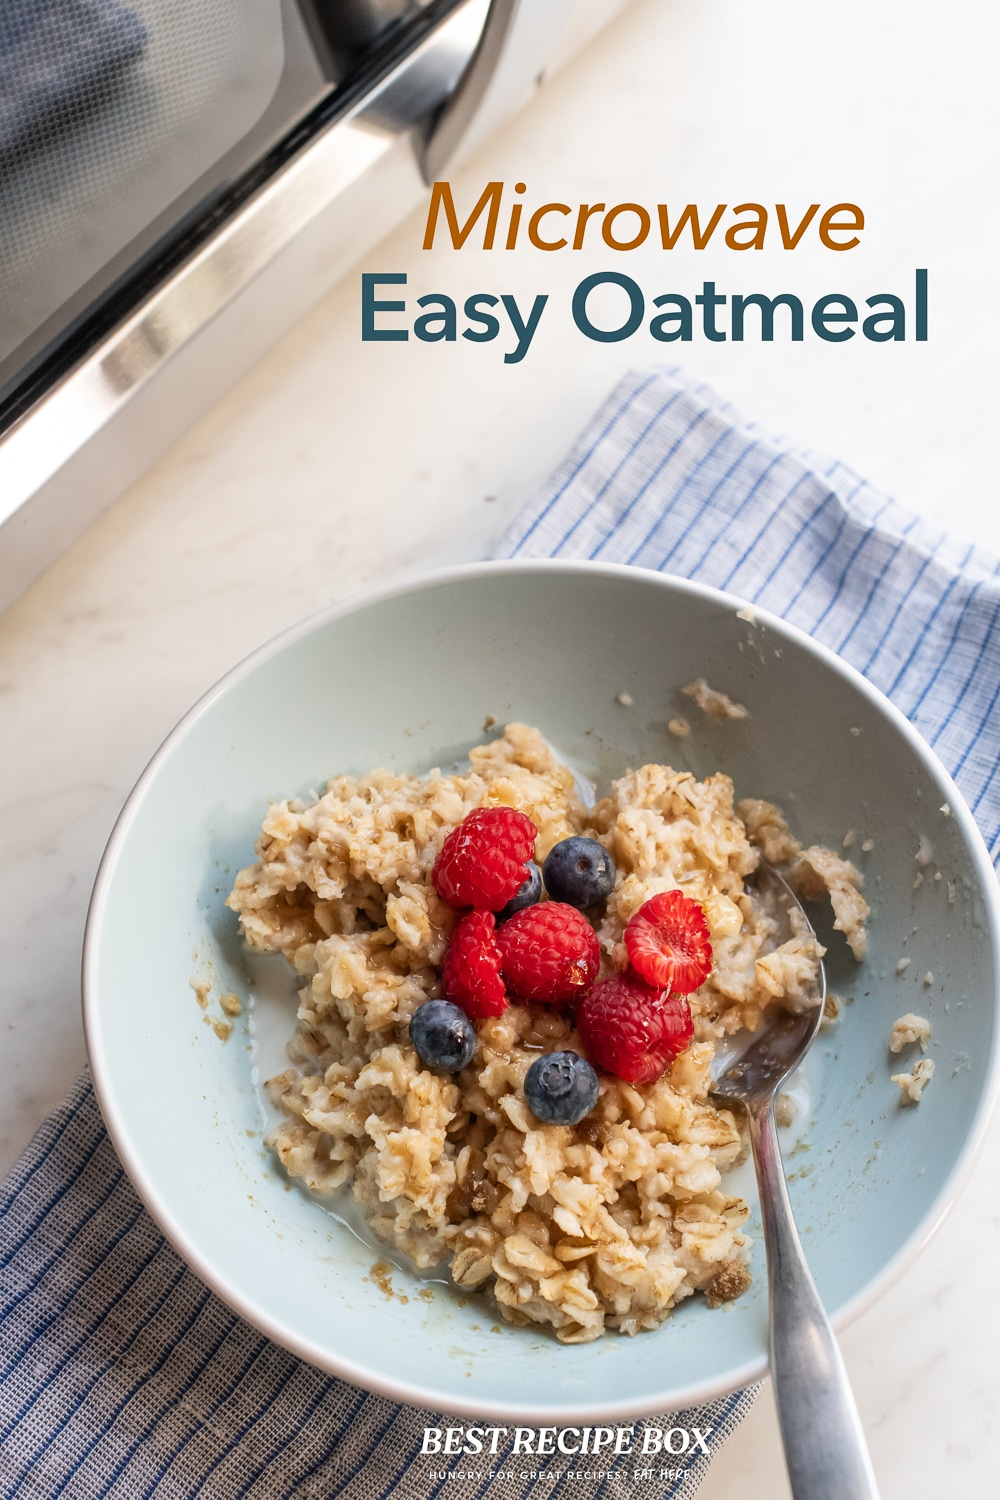 microwave easy oatmeal with old fashioned oats